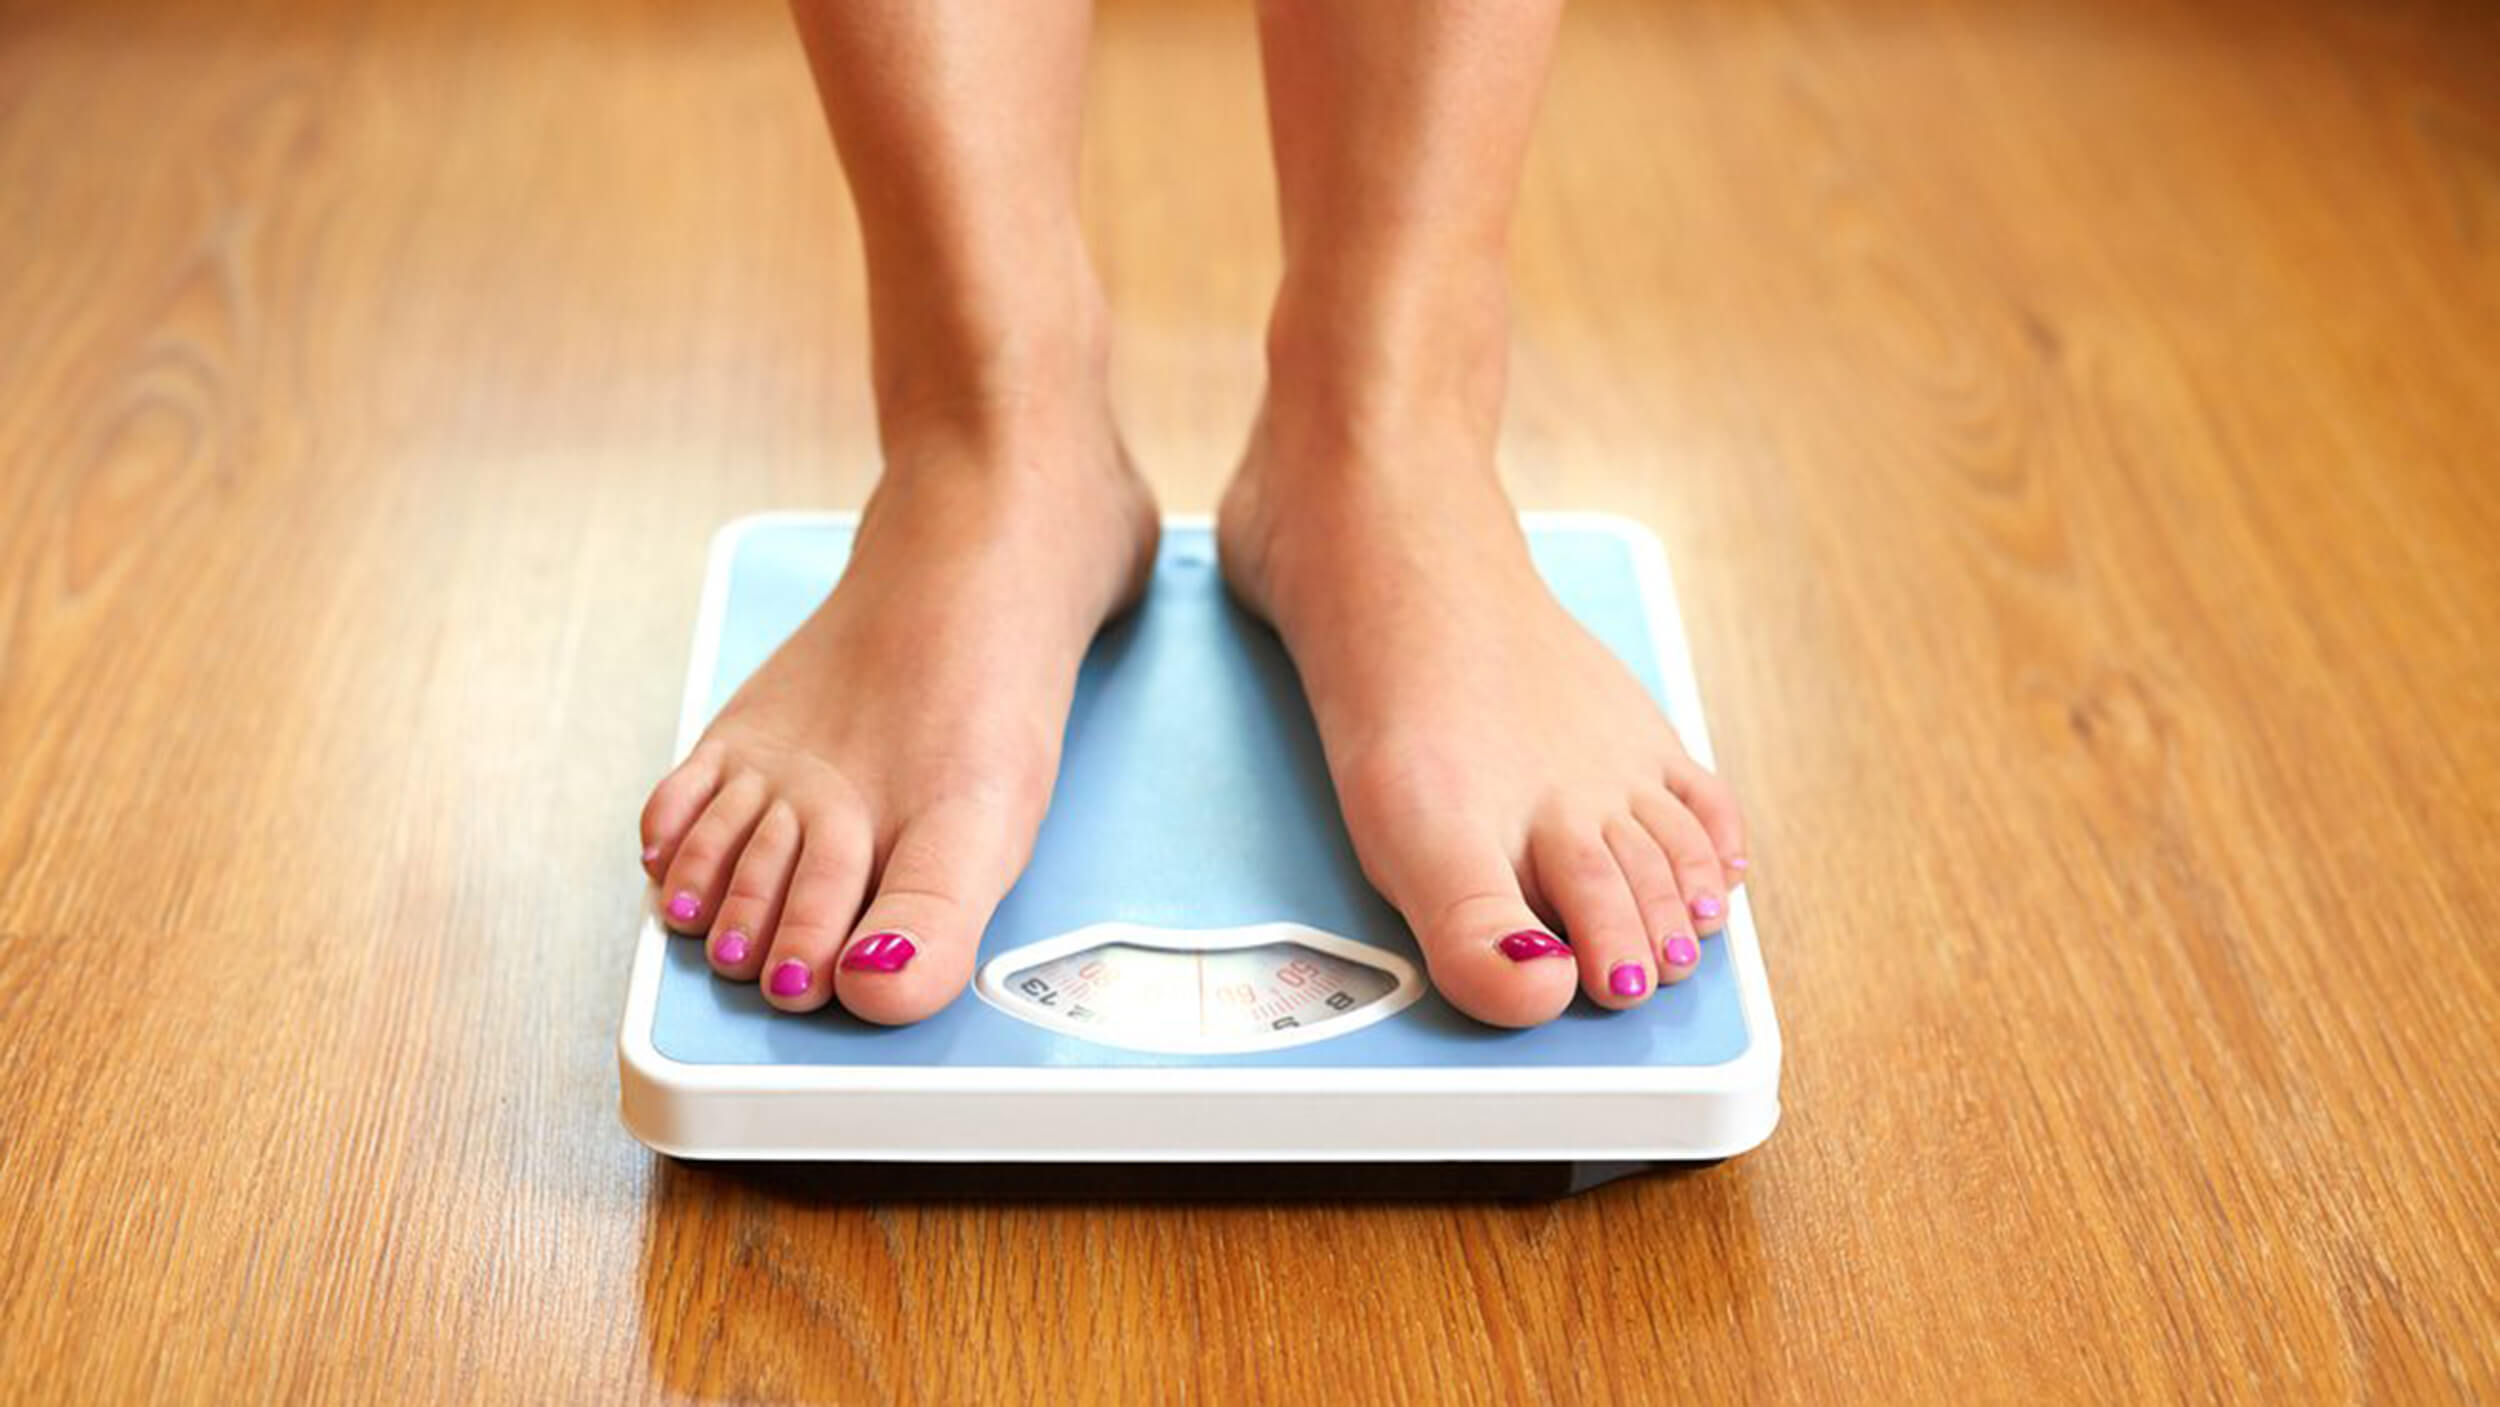 Most people are looking to lose weight for the New Year